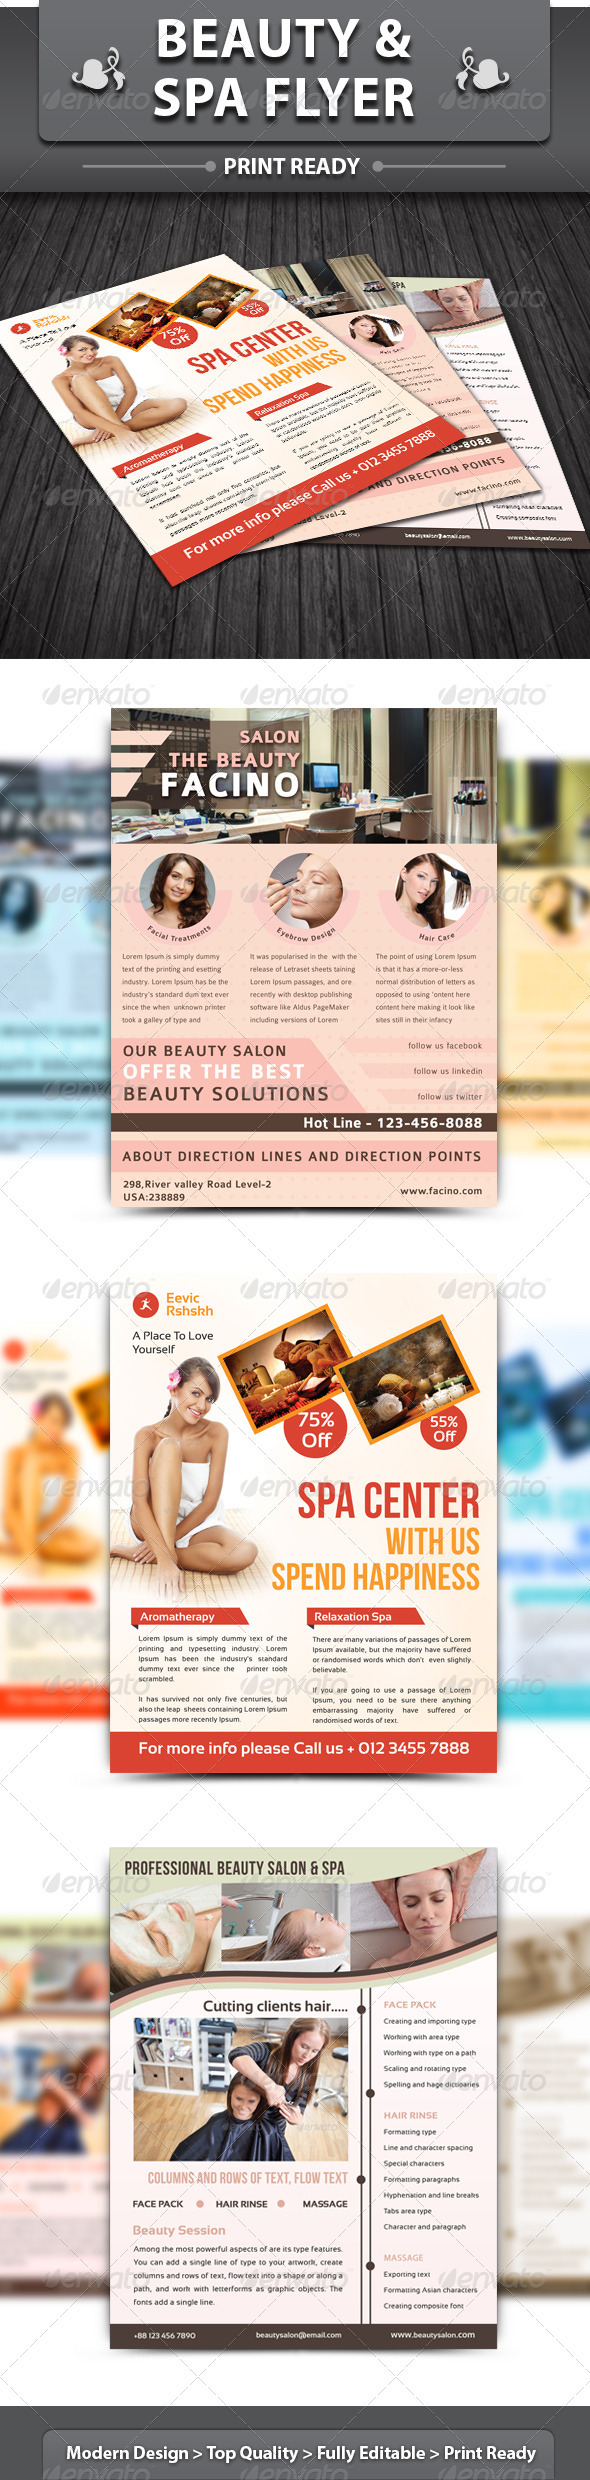 GraphicRiver Beauty & Spa Flyer 3295285